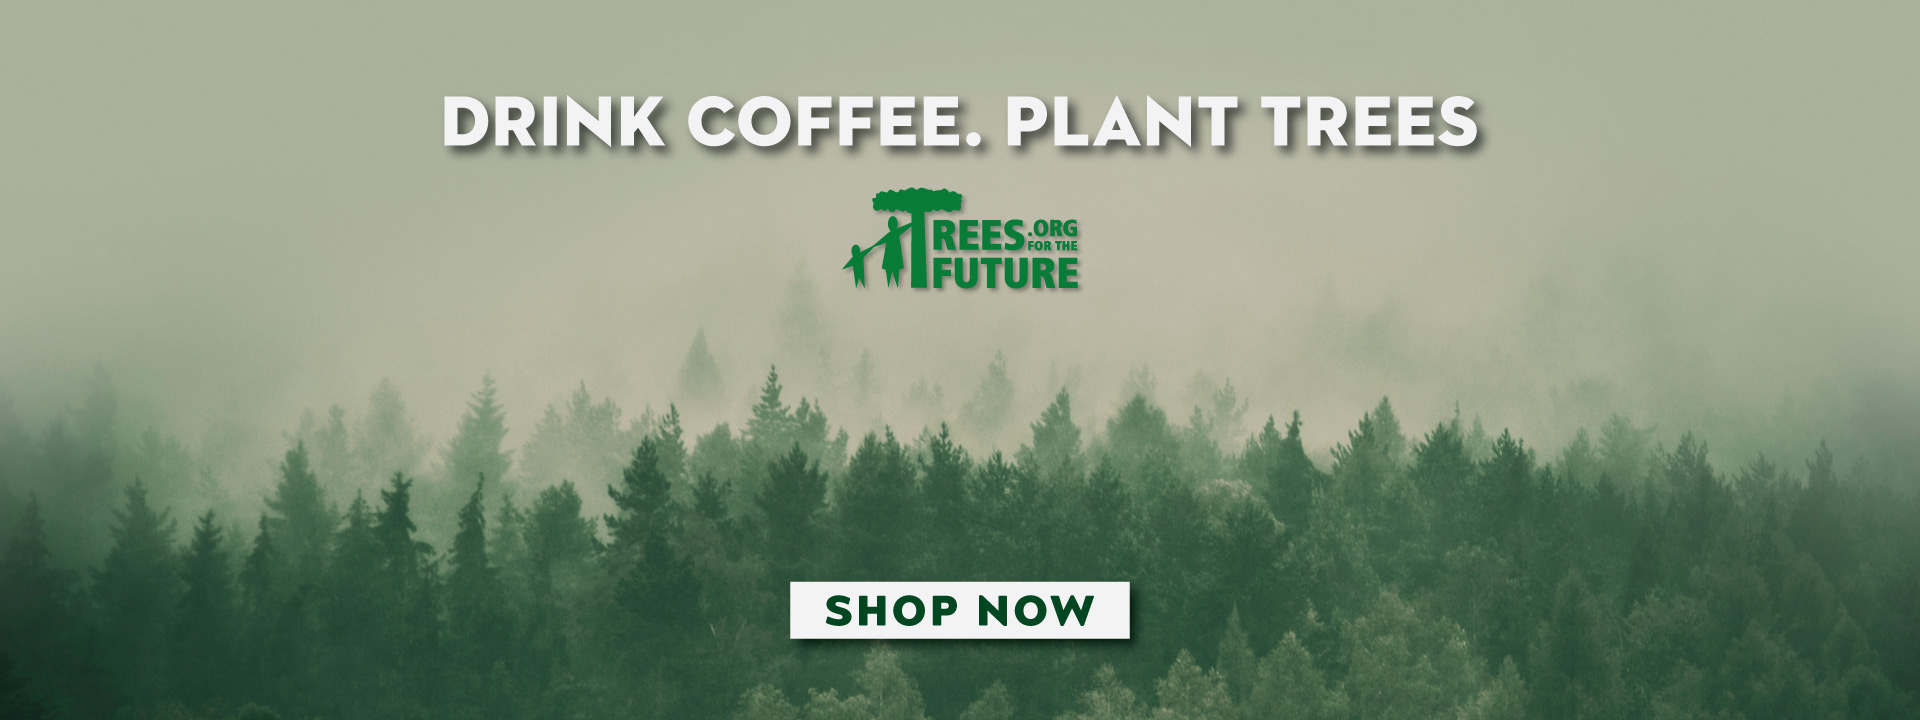 drink-coffee-plant-trees